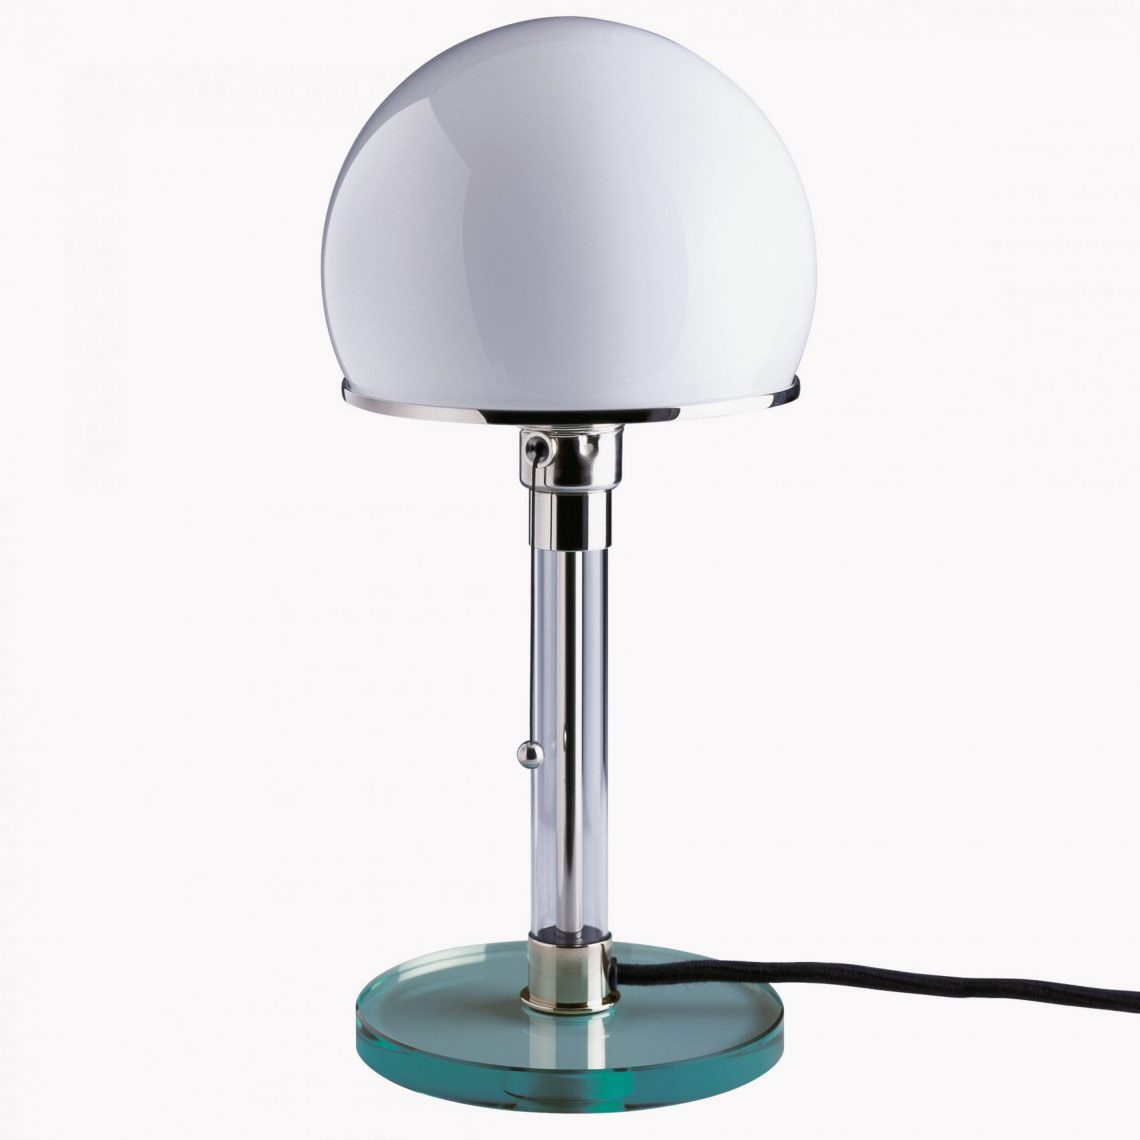 Selected_Happy birthday Bauhaus_mt8 lamp